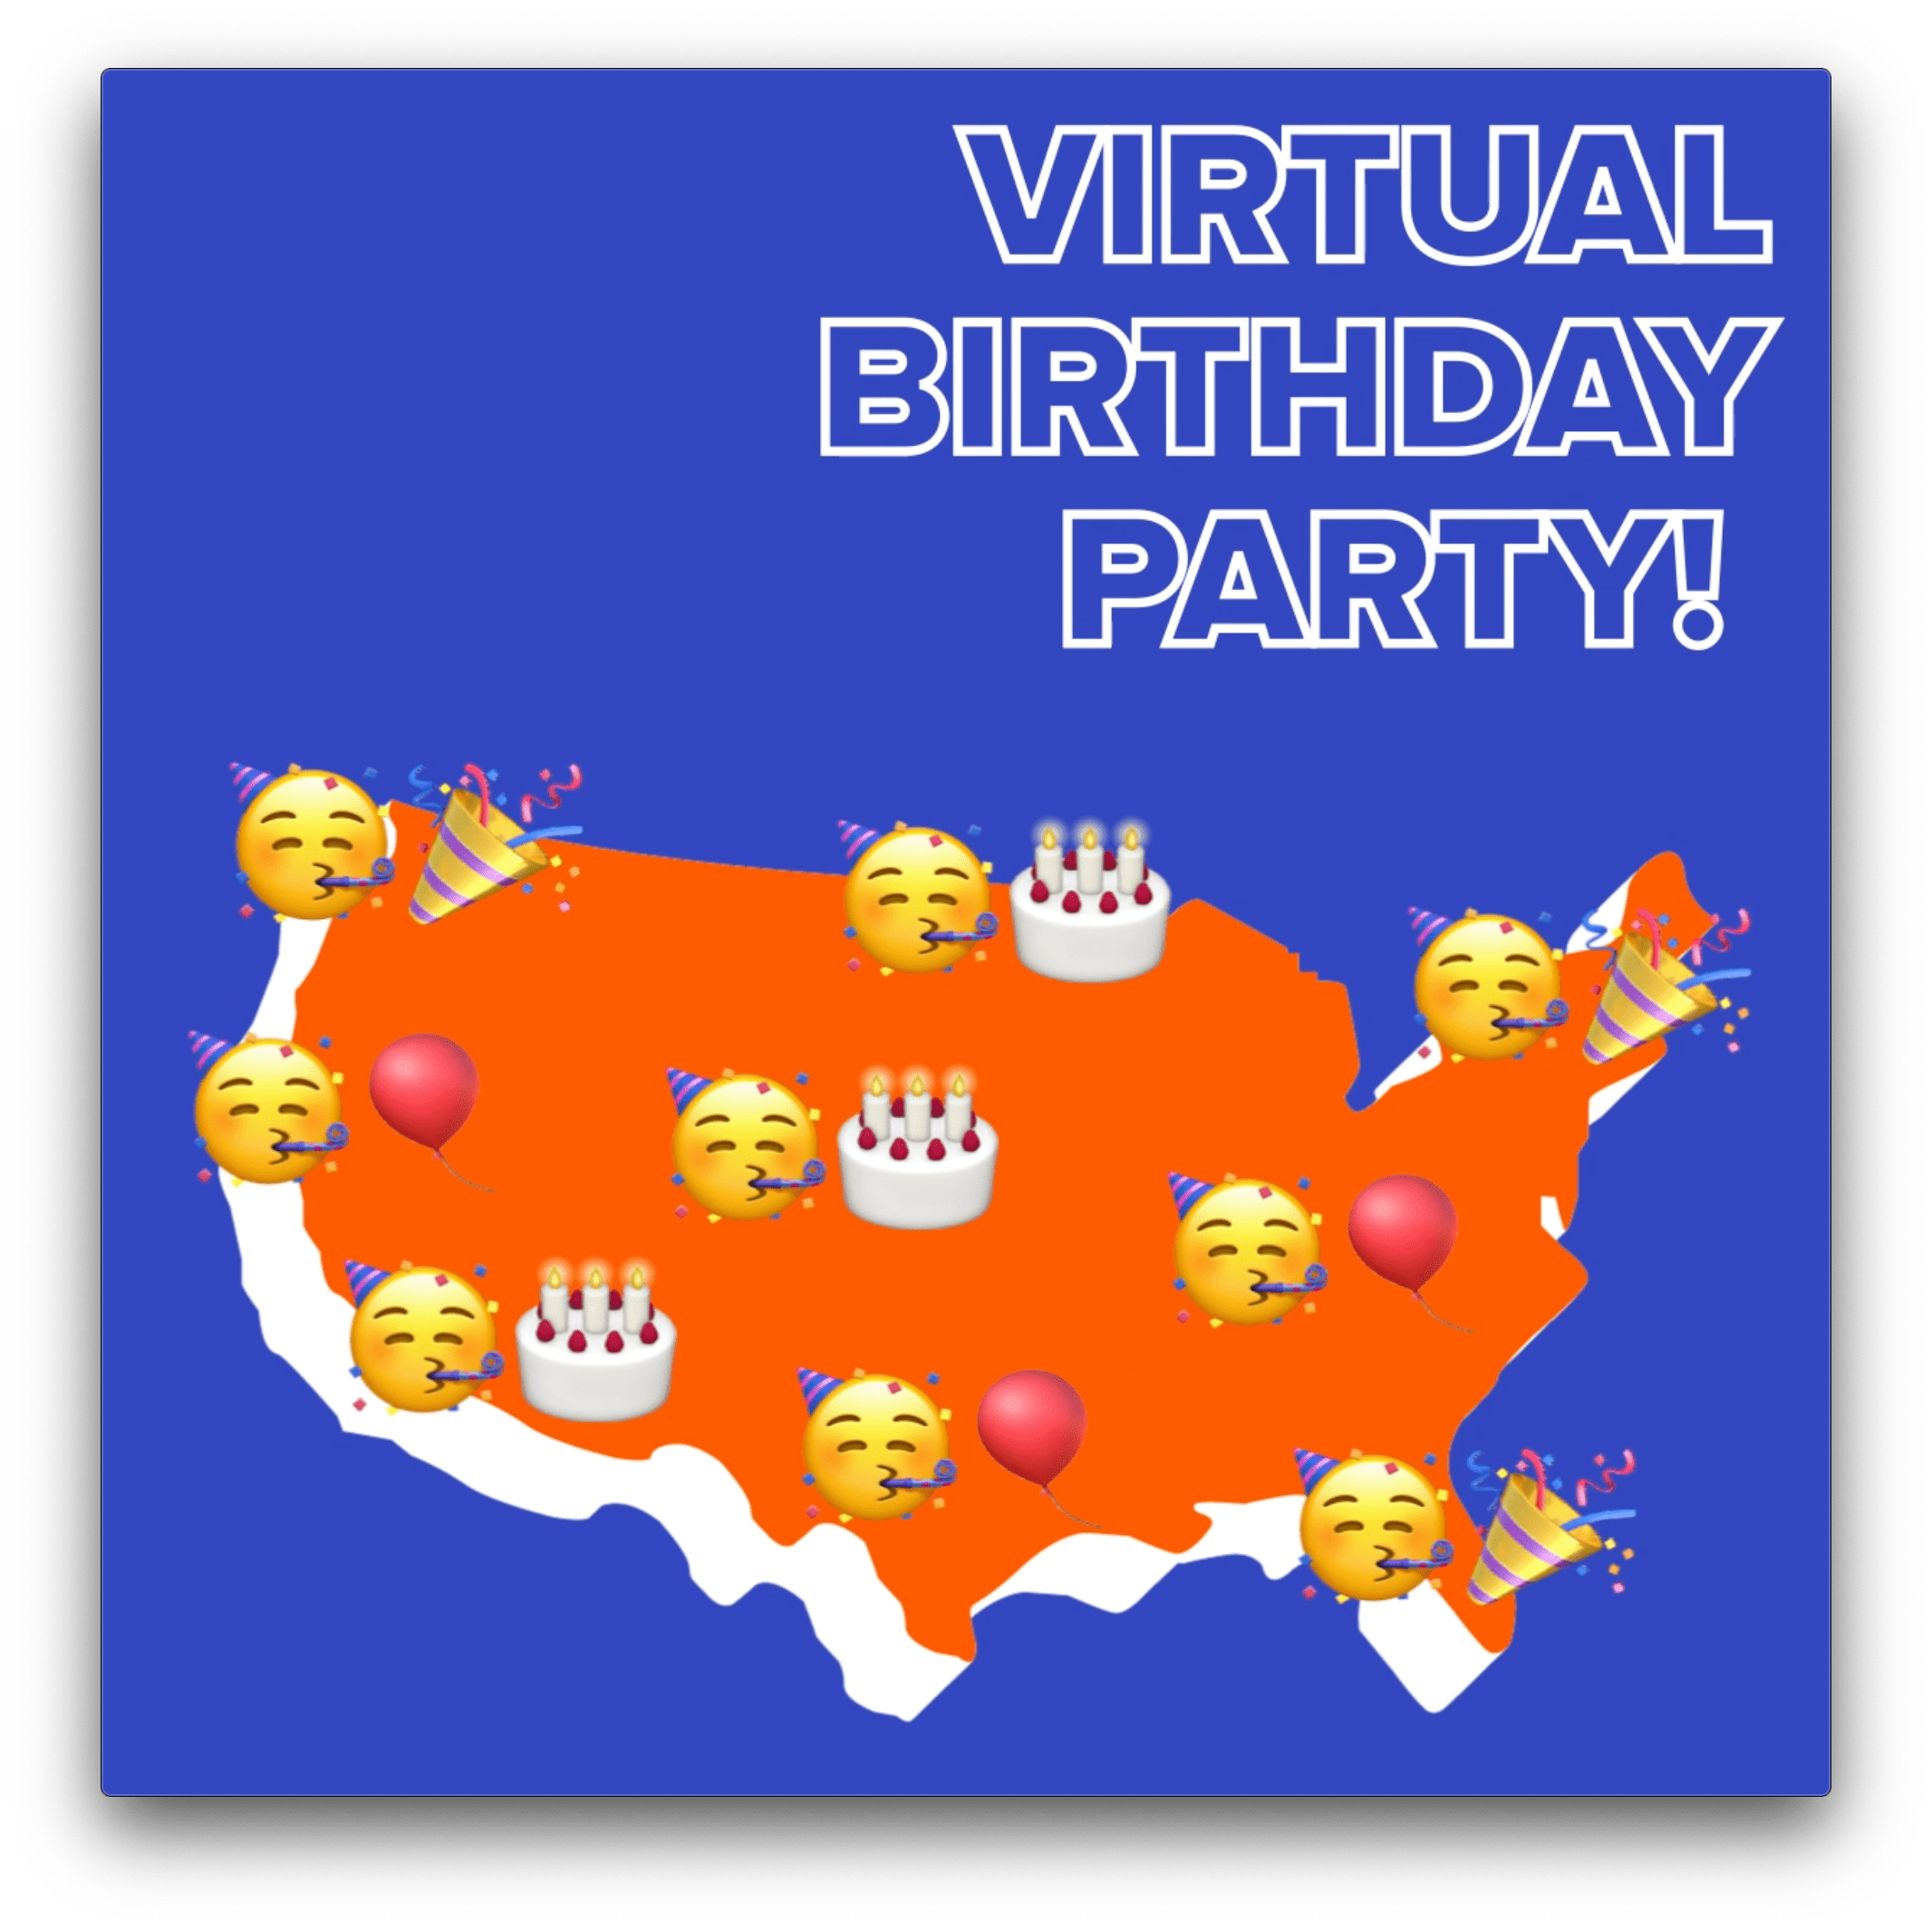 Sky Zone Offers FREE Virtual Birthday Party Experience For Kids